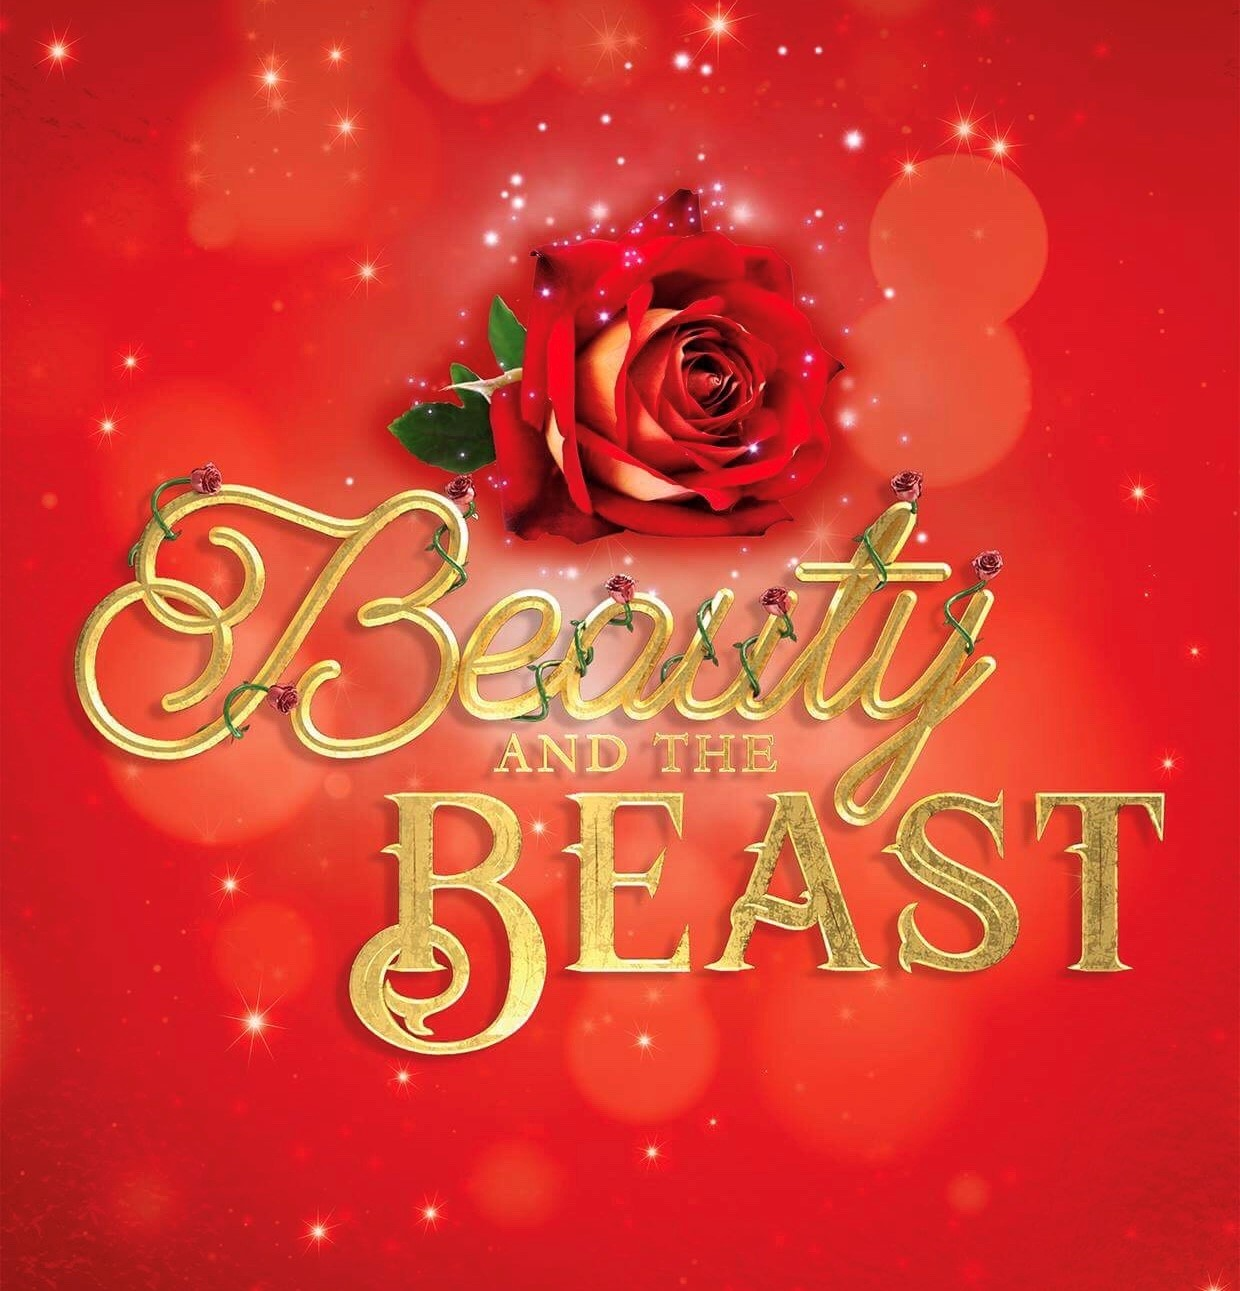 Tickets For Tivoli Theatre Aberdeen Beauty And The Beast The Tivoli Theatre